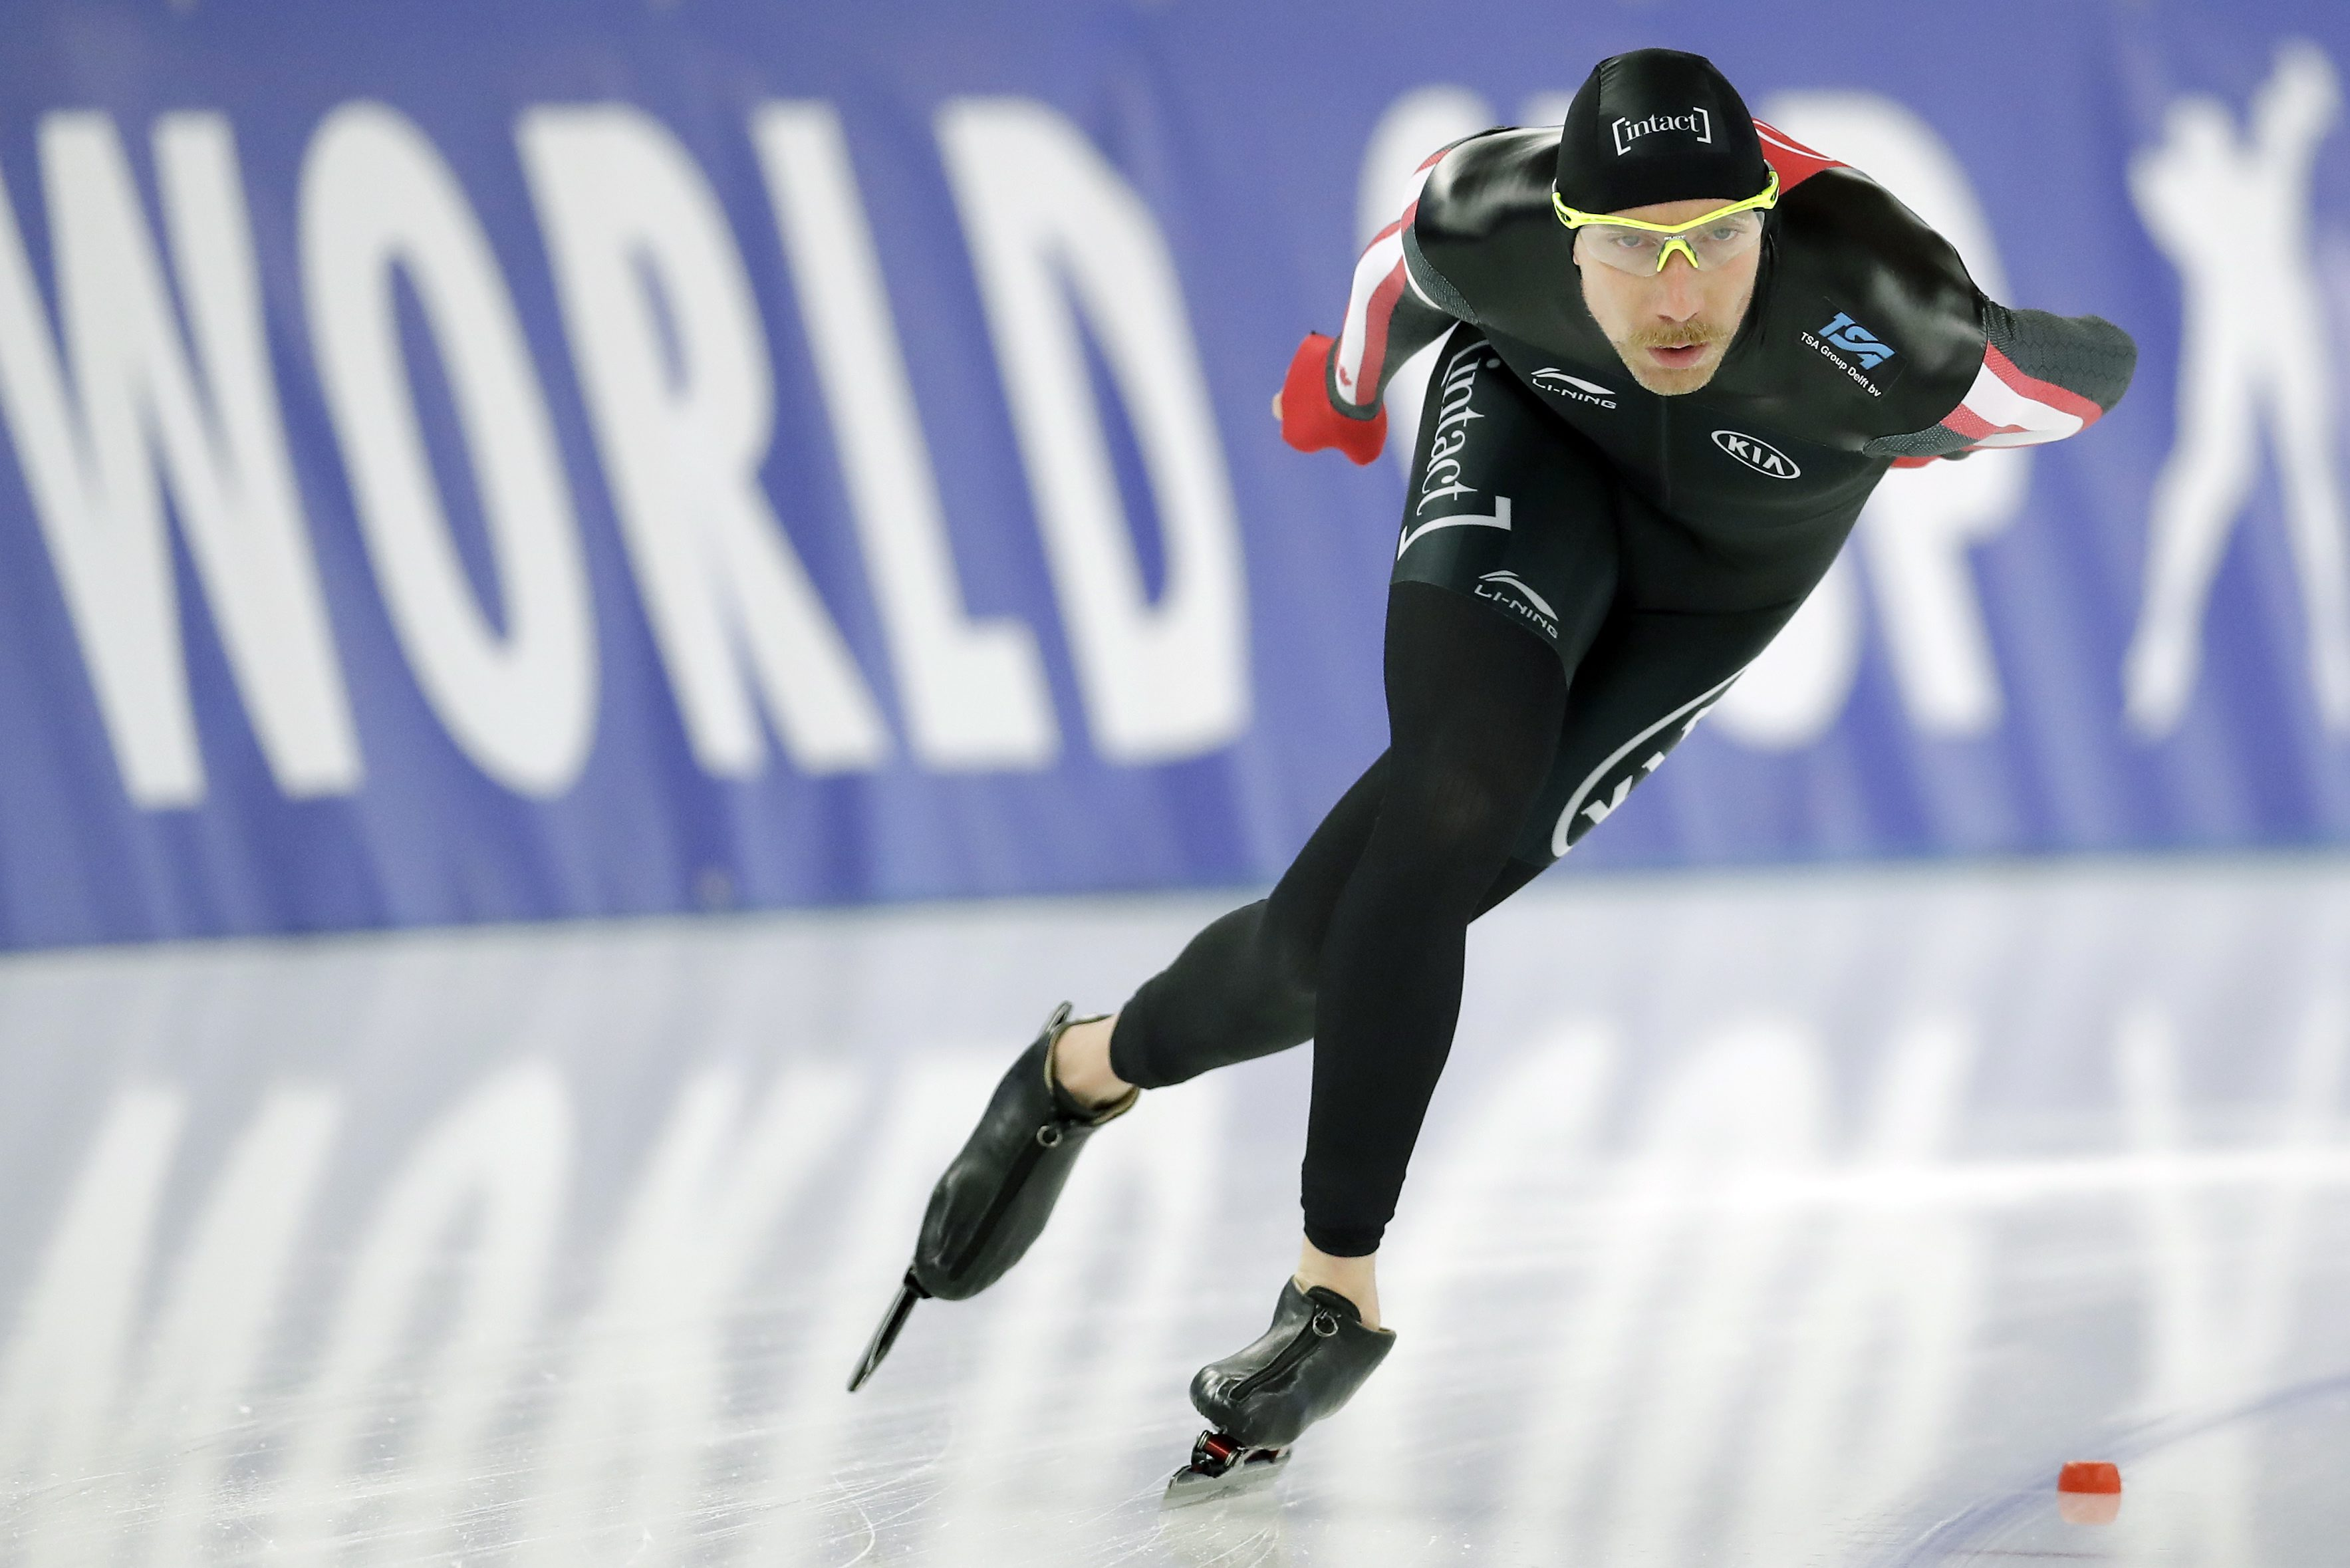 Canada's Ted-Jan Bloemen competes during his men's 5000 meters race of the Speed Skating World Cup in Berlin, Germany, Saturday, Jan. 28, 2017. (AP Photo/Michael Sohn)